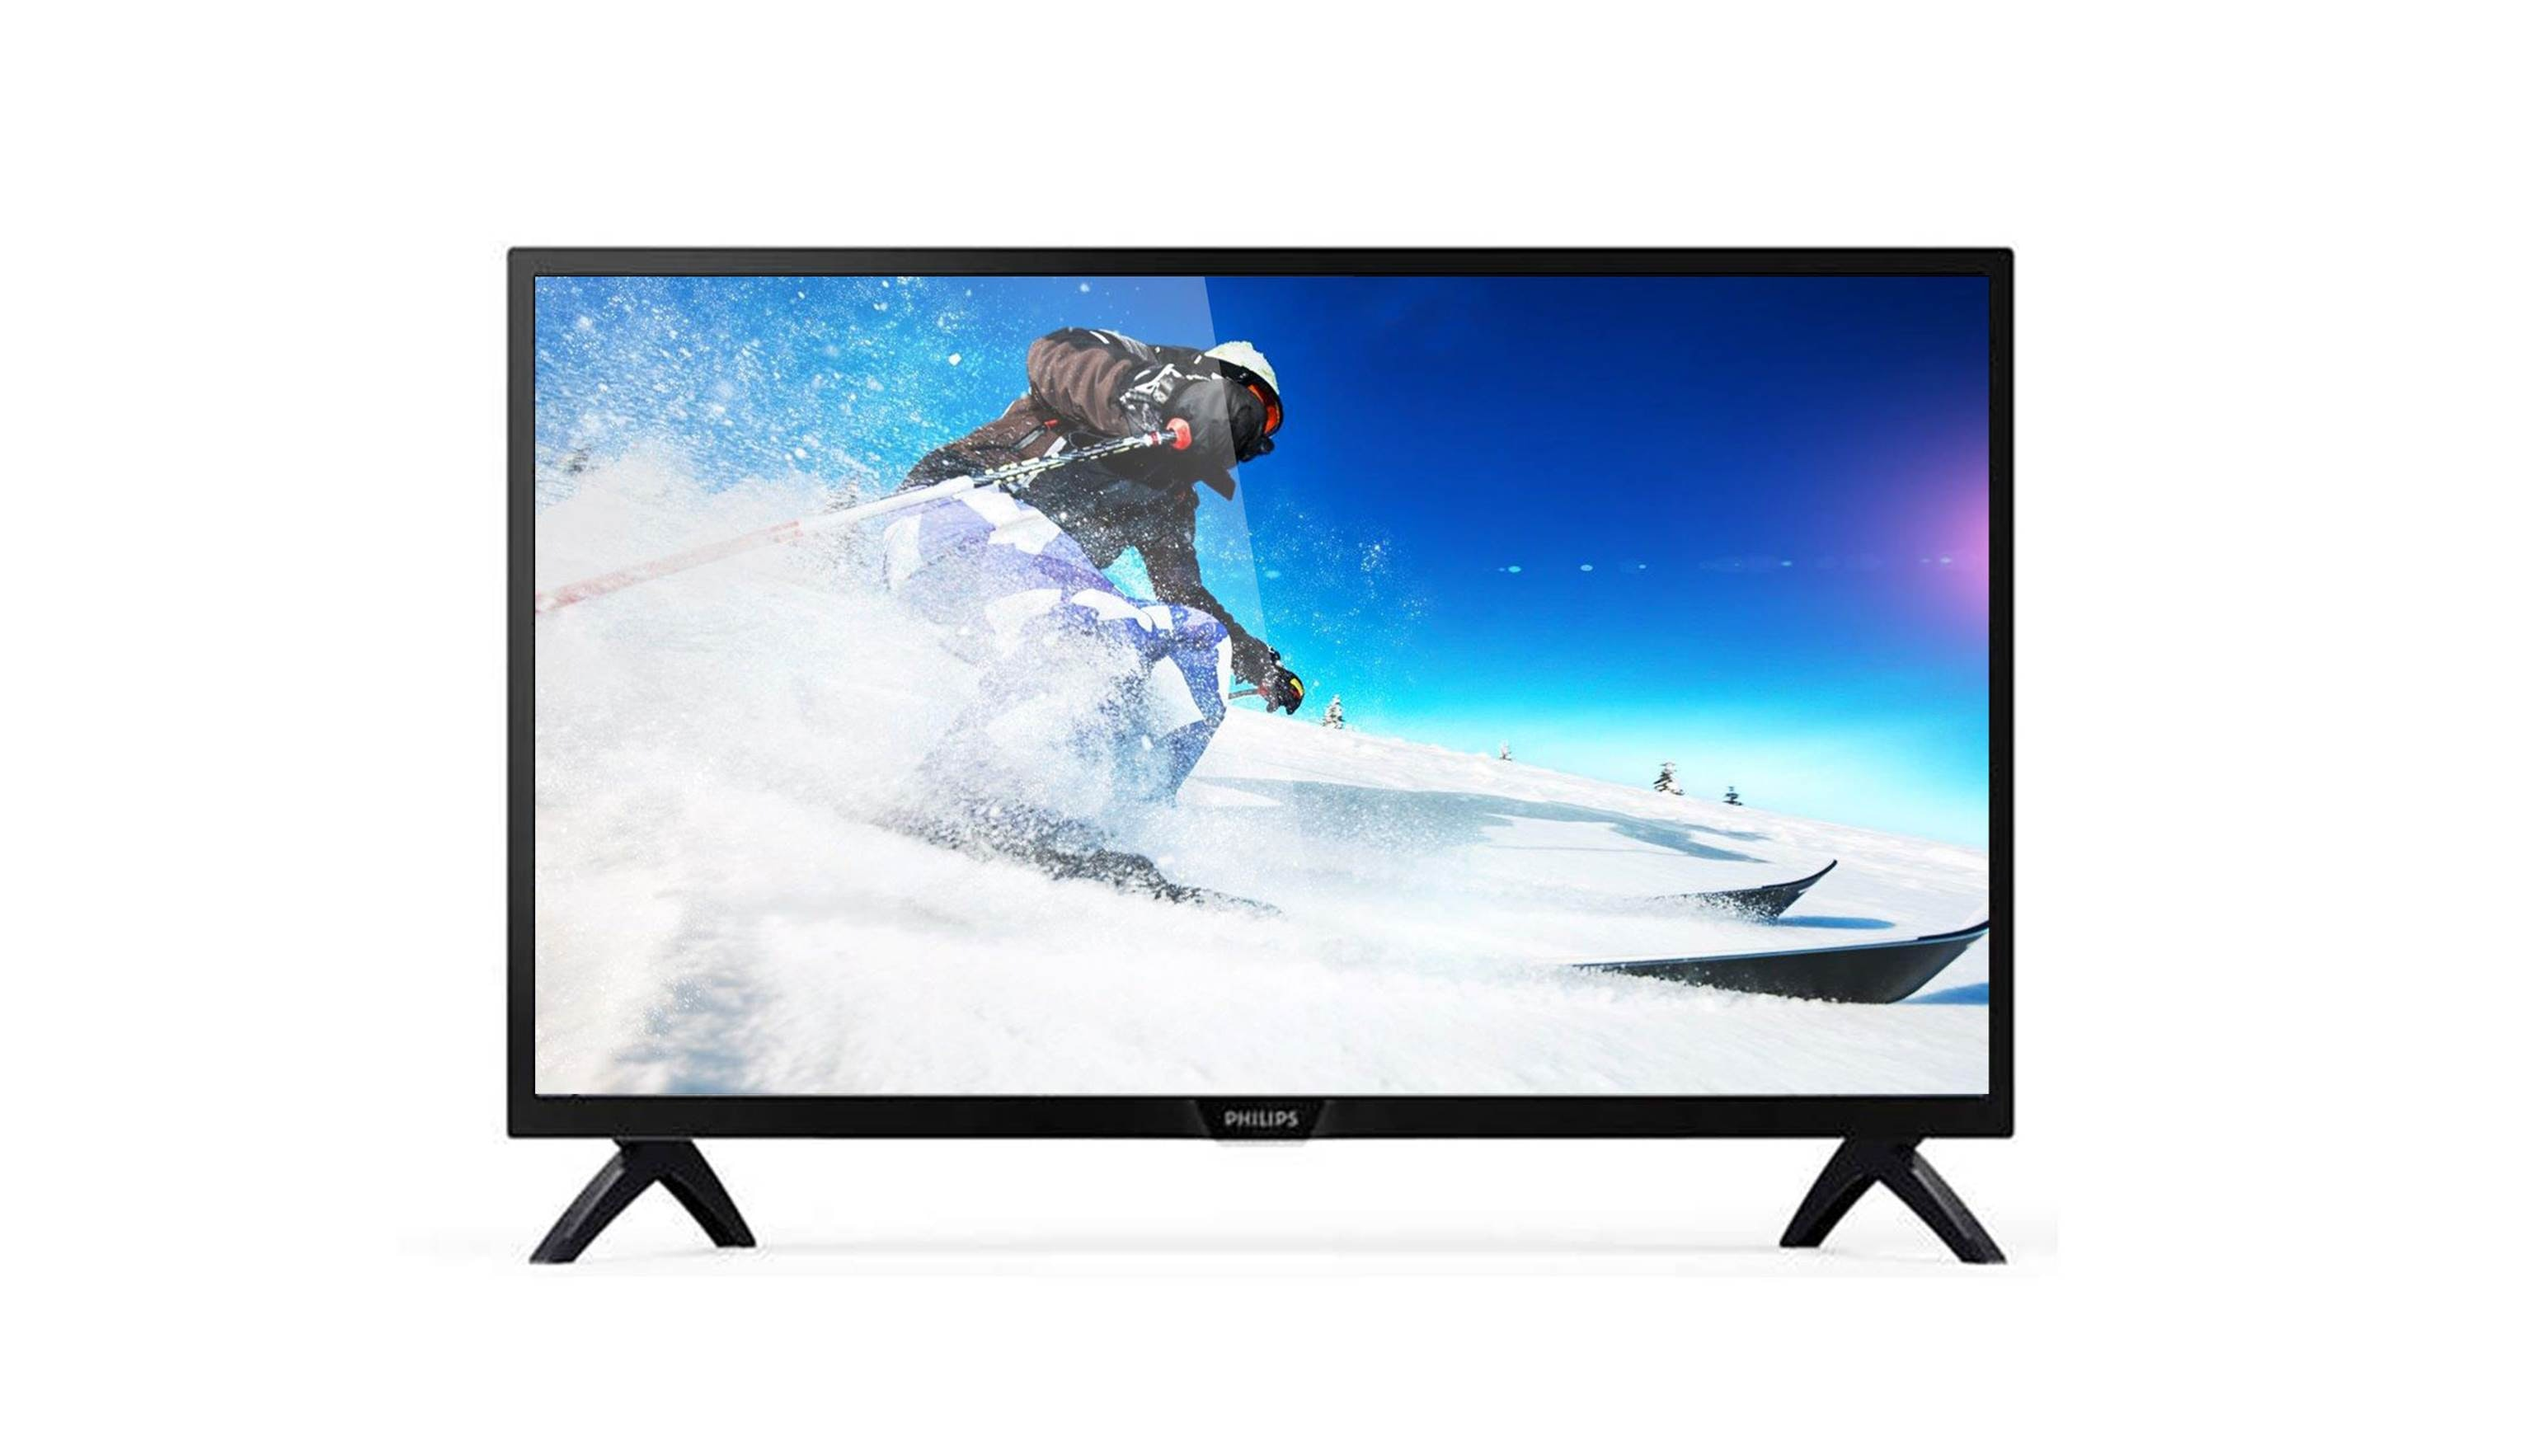 philips 32pht4002 32 slim led tv harvey norman singapore rh harveynorman com sg 42Hfl5682d F7 2011 Philips Manual Philips TV Owners ManualsOnline